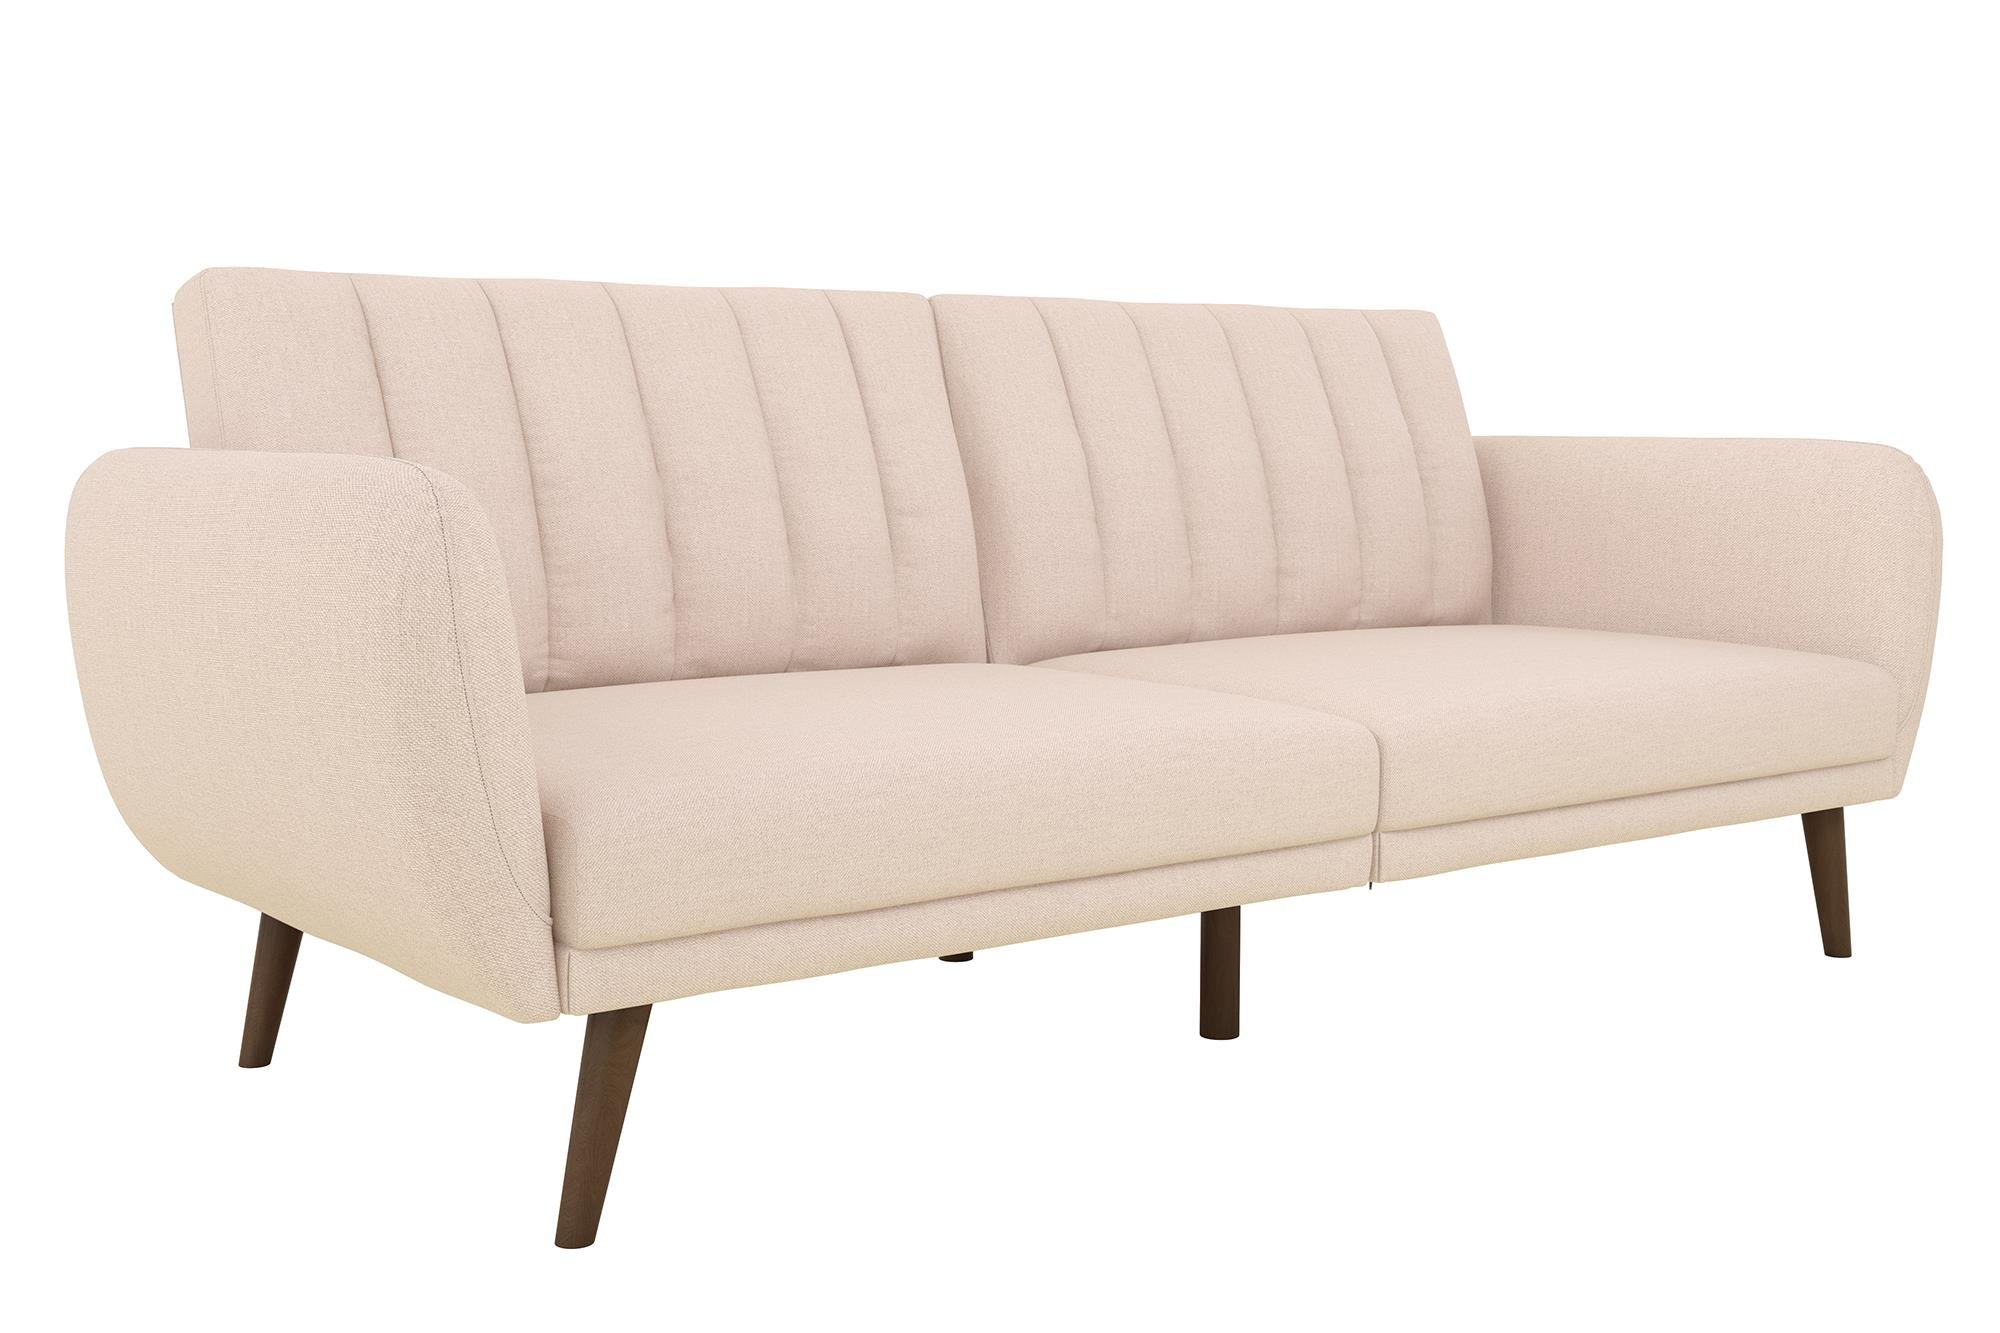 Large Pink Sofa Futon Living Room Furniture Sleeper Sofa Durable Easy  Cleaning